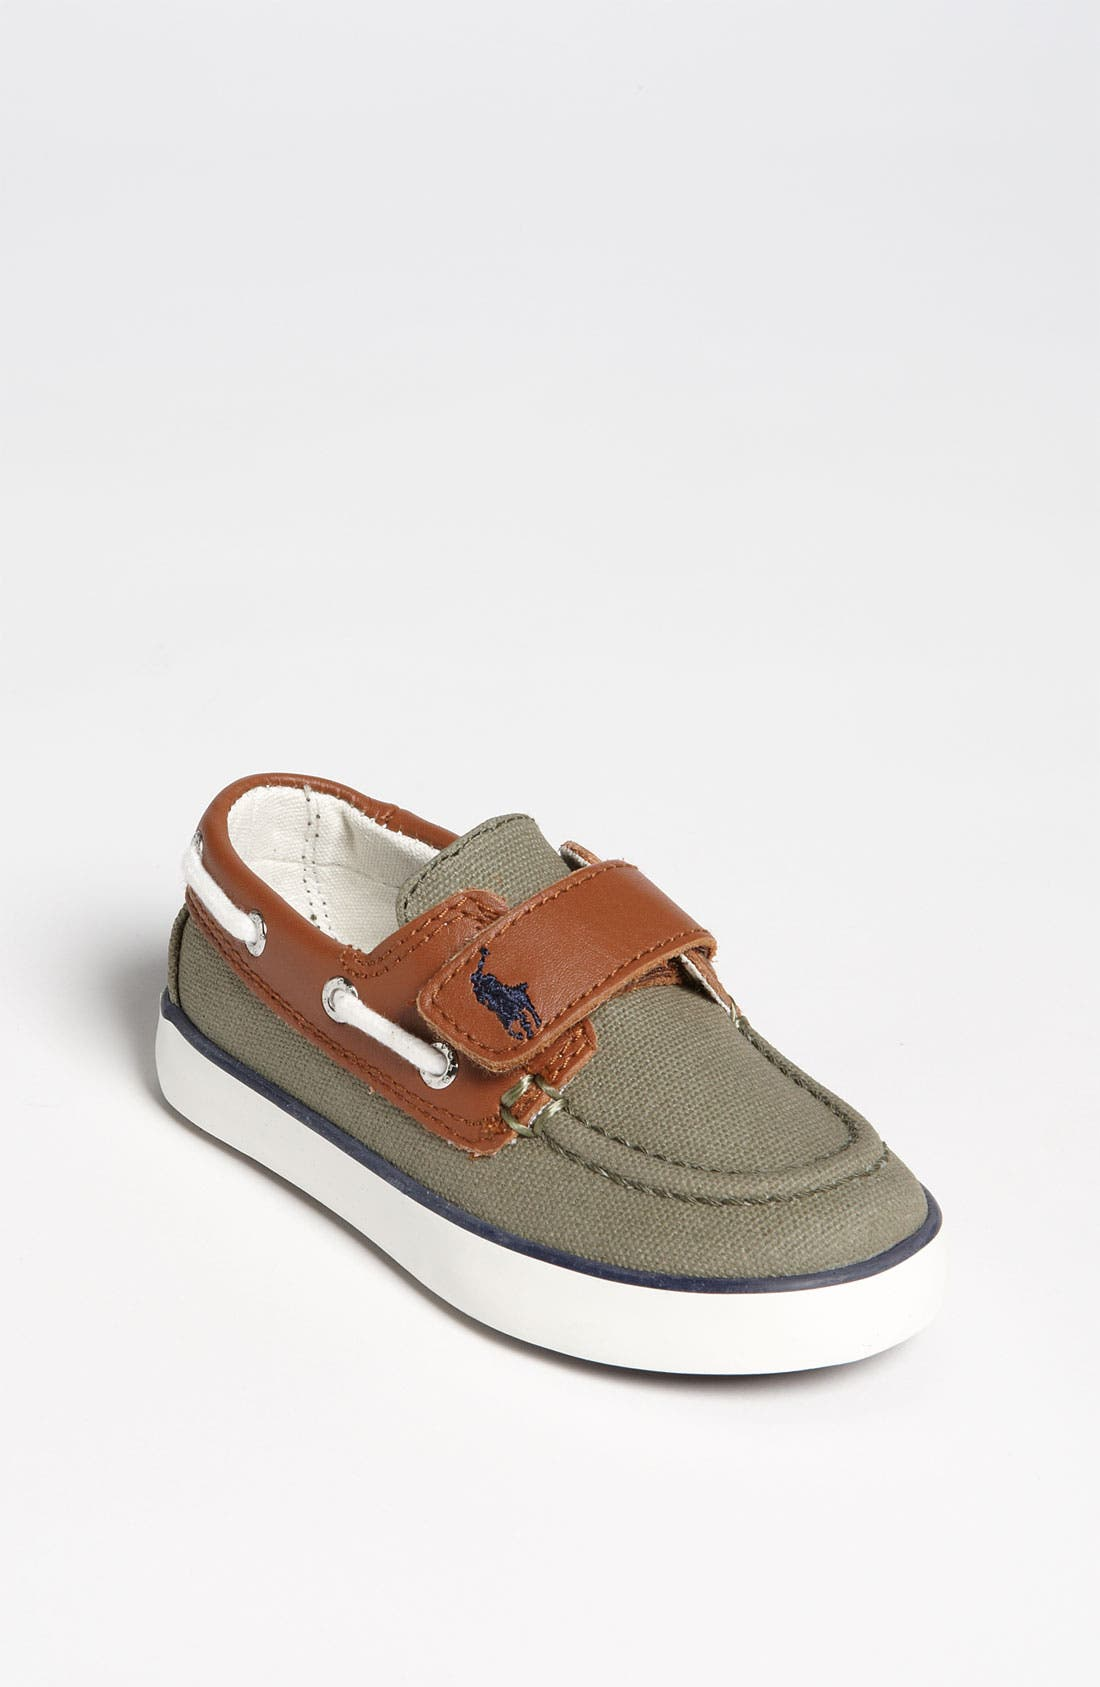 Alternate Image 1 Selected - Ralph Lauren Kids Boat Shoe (Baby, Walker & Toddler)